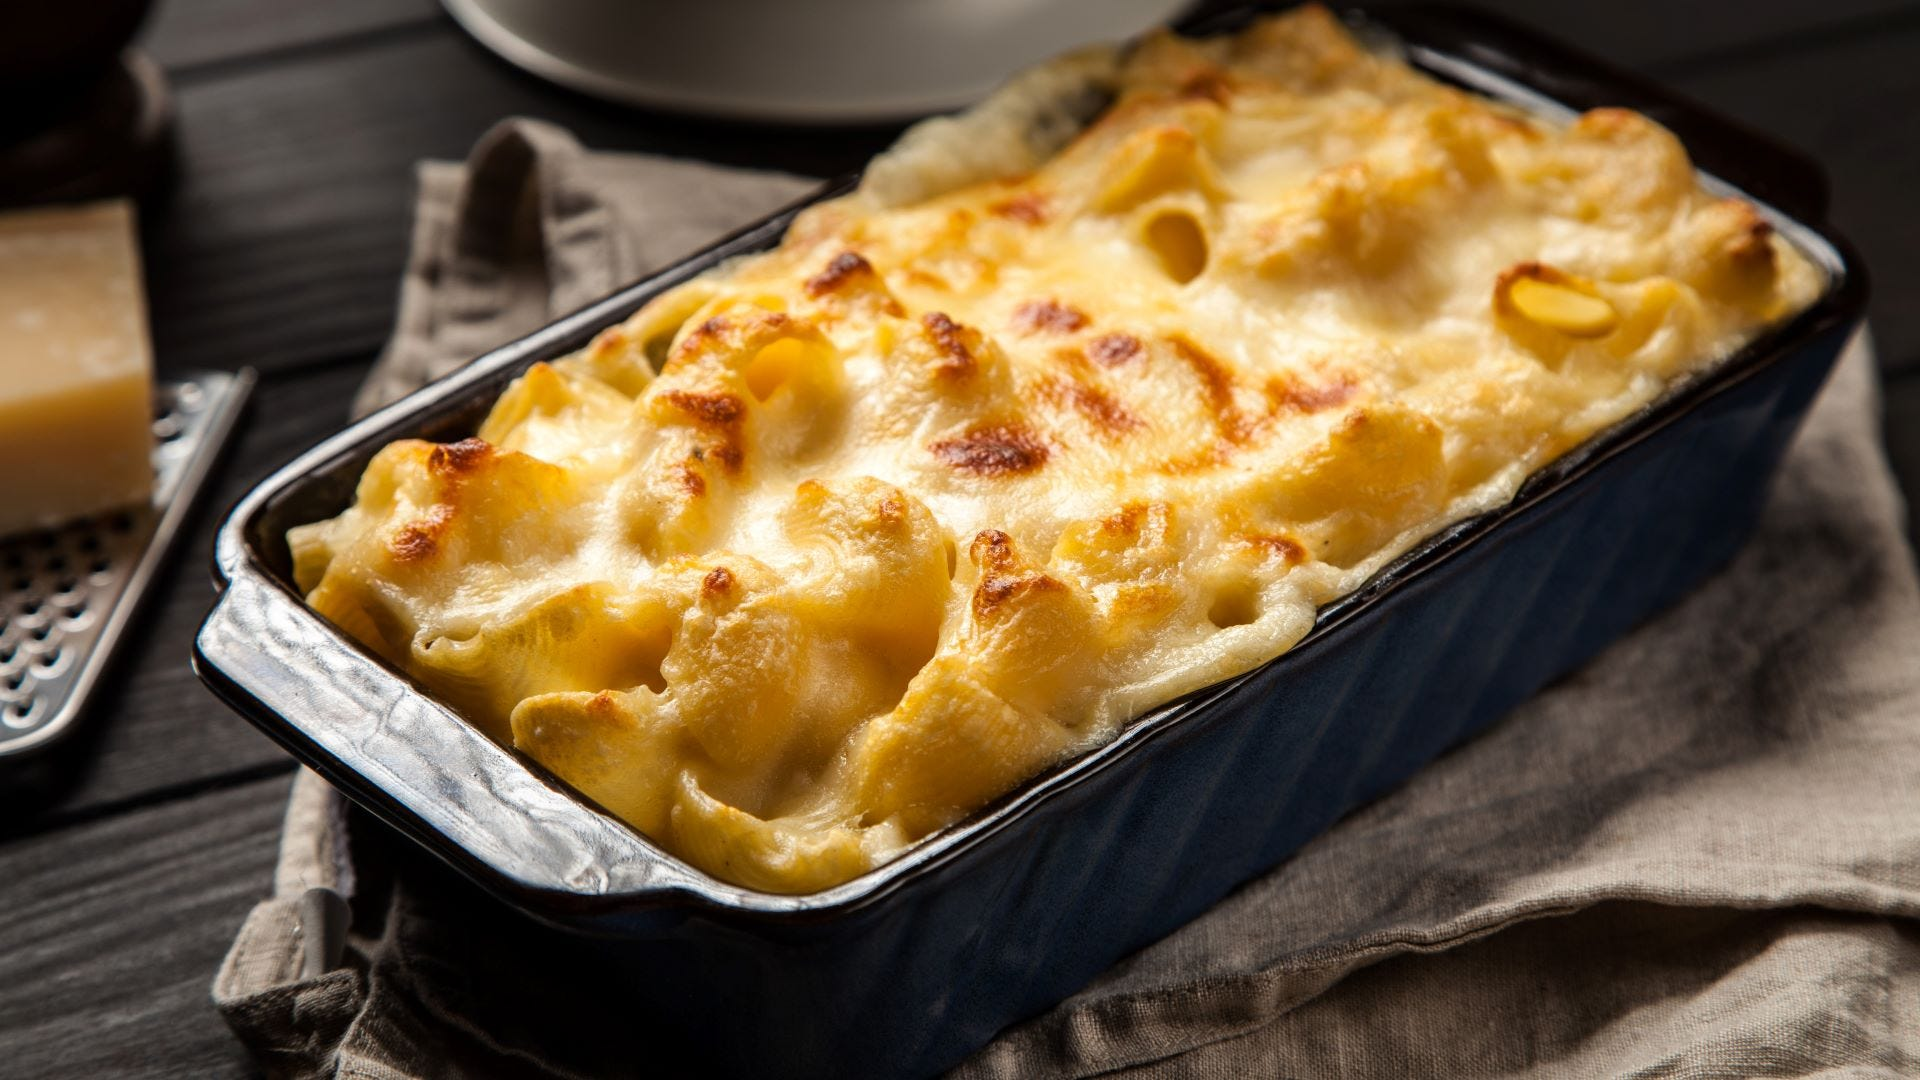 A pan of macaroni and cheese.